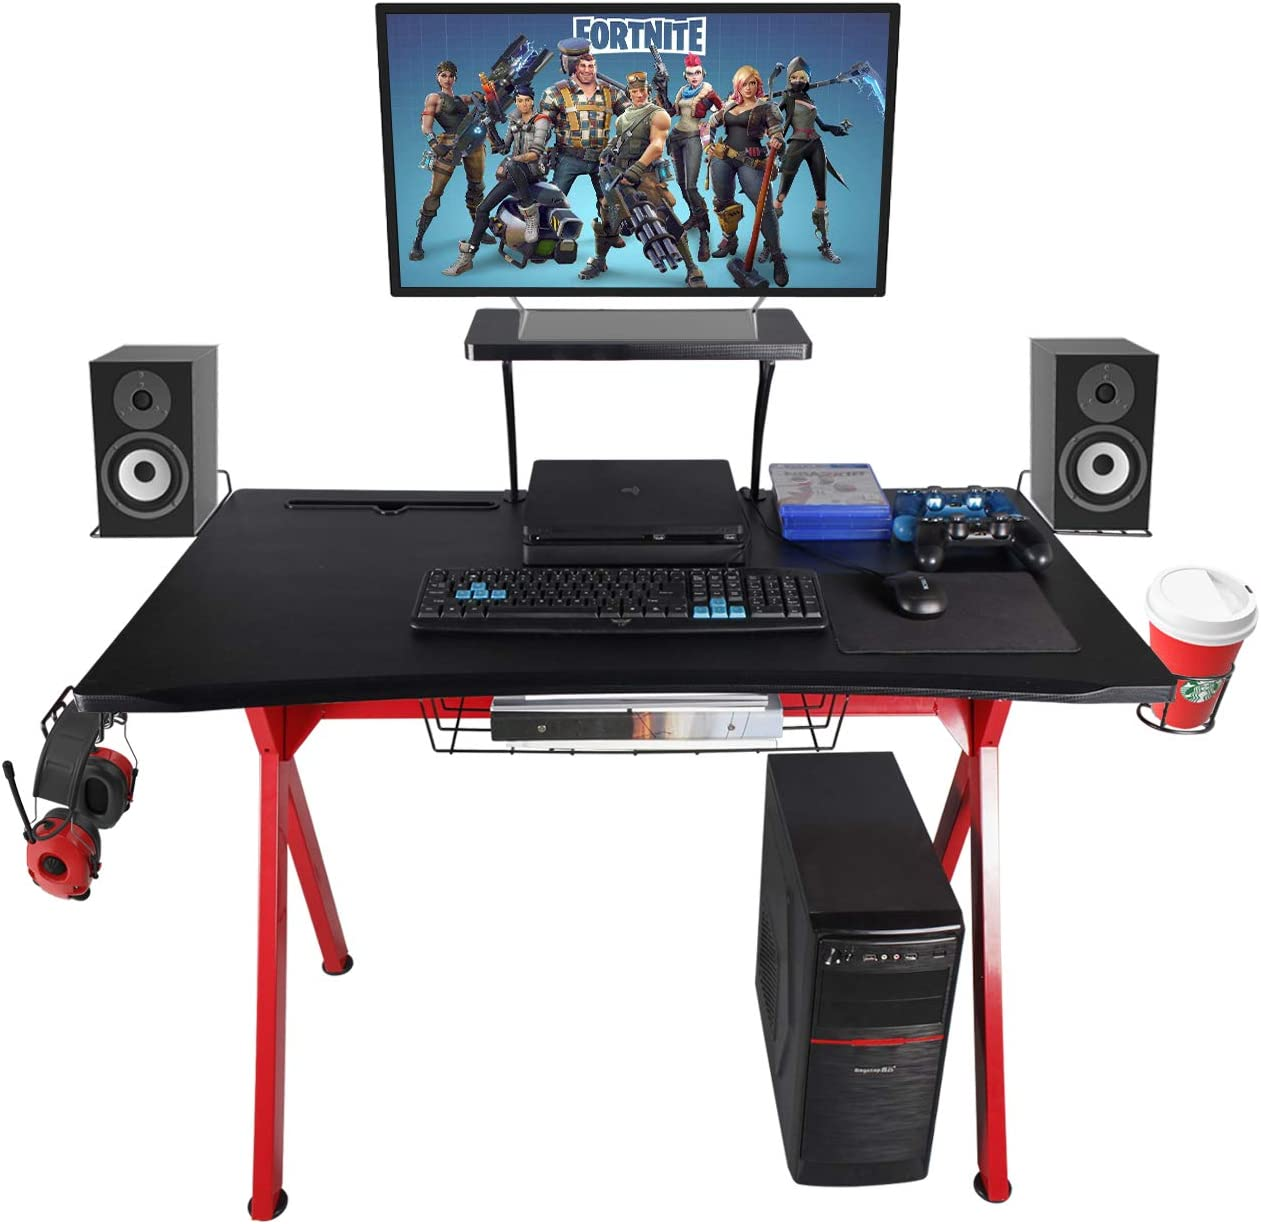 "LAZZO X Type Computer Gaming Desk 41"" Home Game Table Desk with Display Support Plate, Cup Holder and Headphone Hook,Gamer Workstation, Curved Front Desktop,Red & Black Design(41"" Wx23.5 D)"